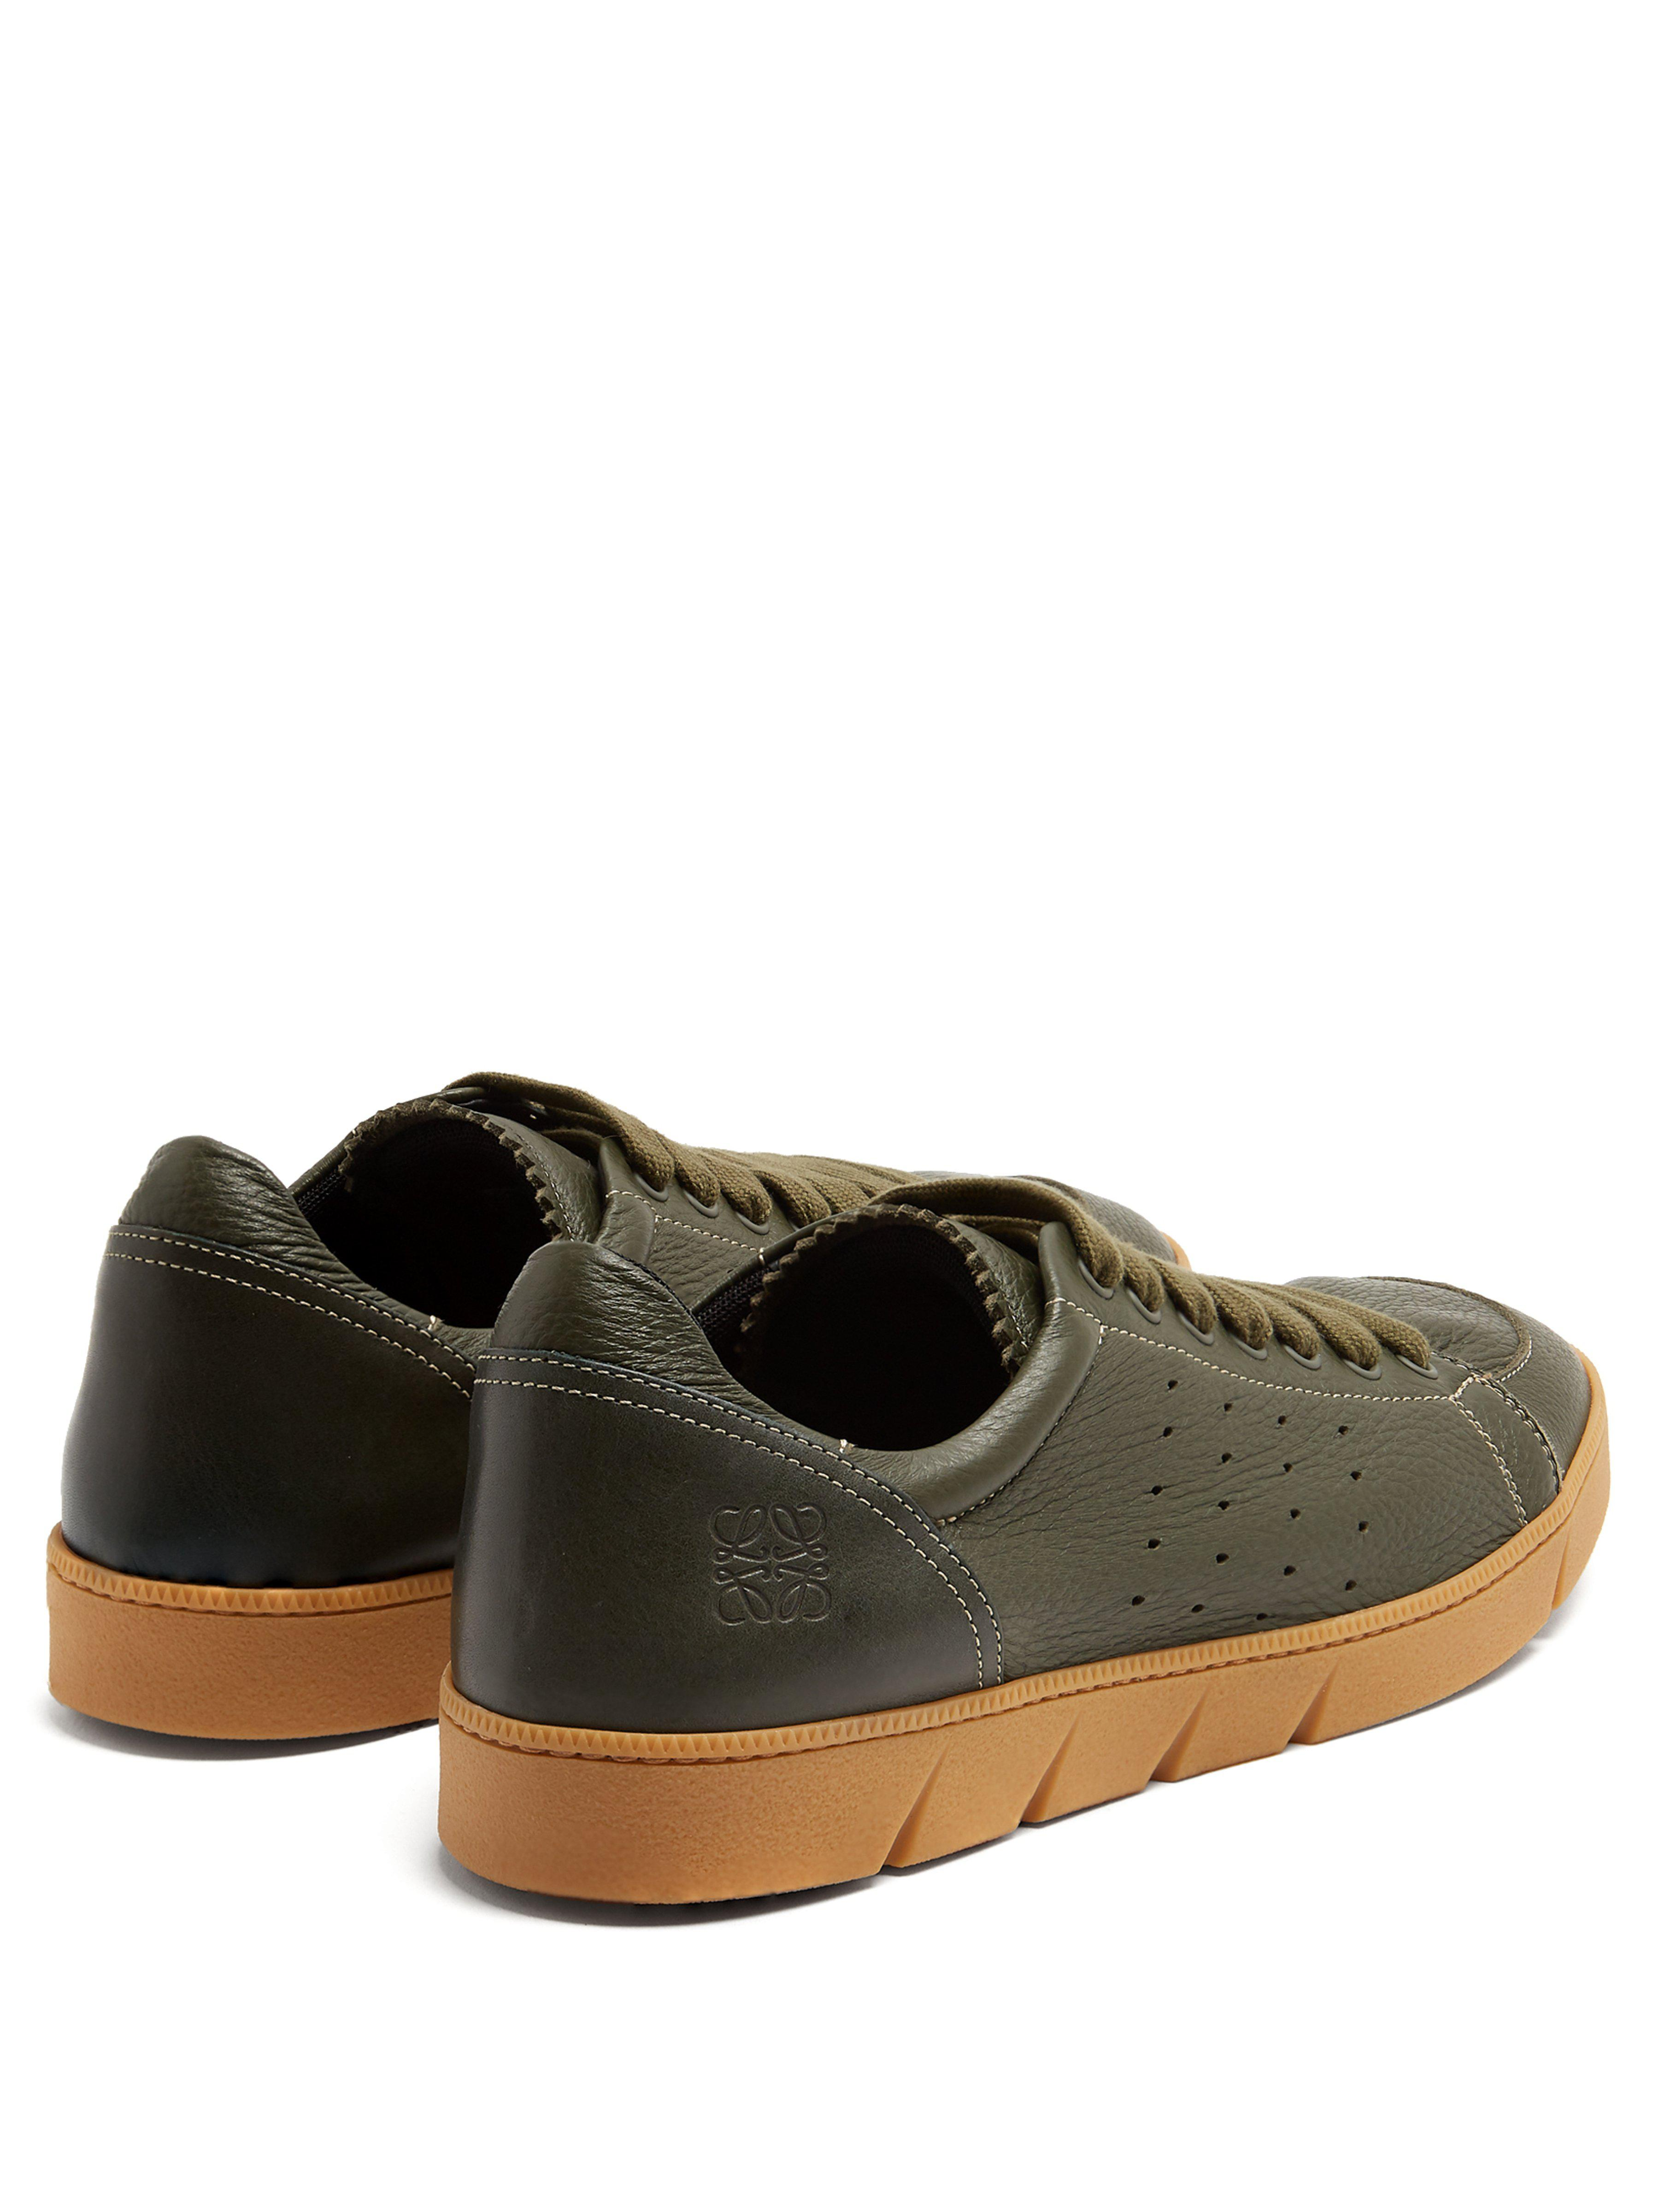 Loewe Round Toe Leather Low Top Trainers for Men